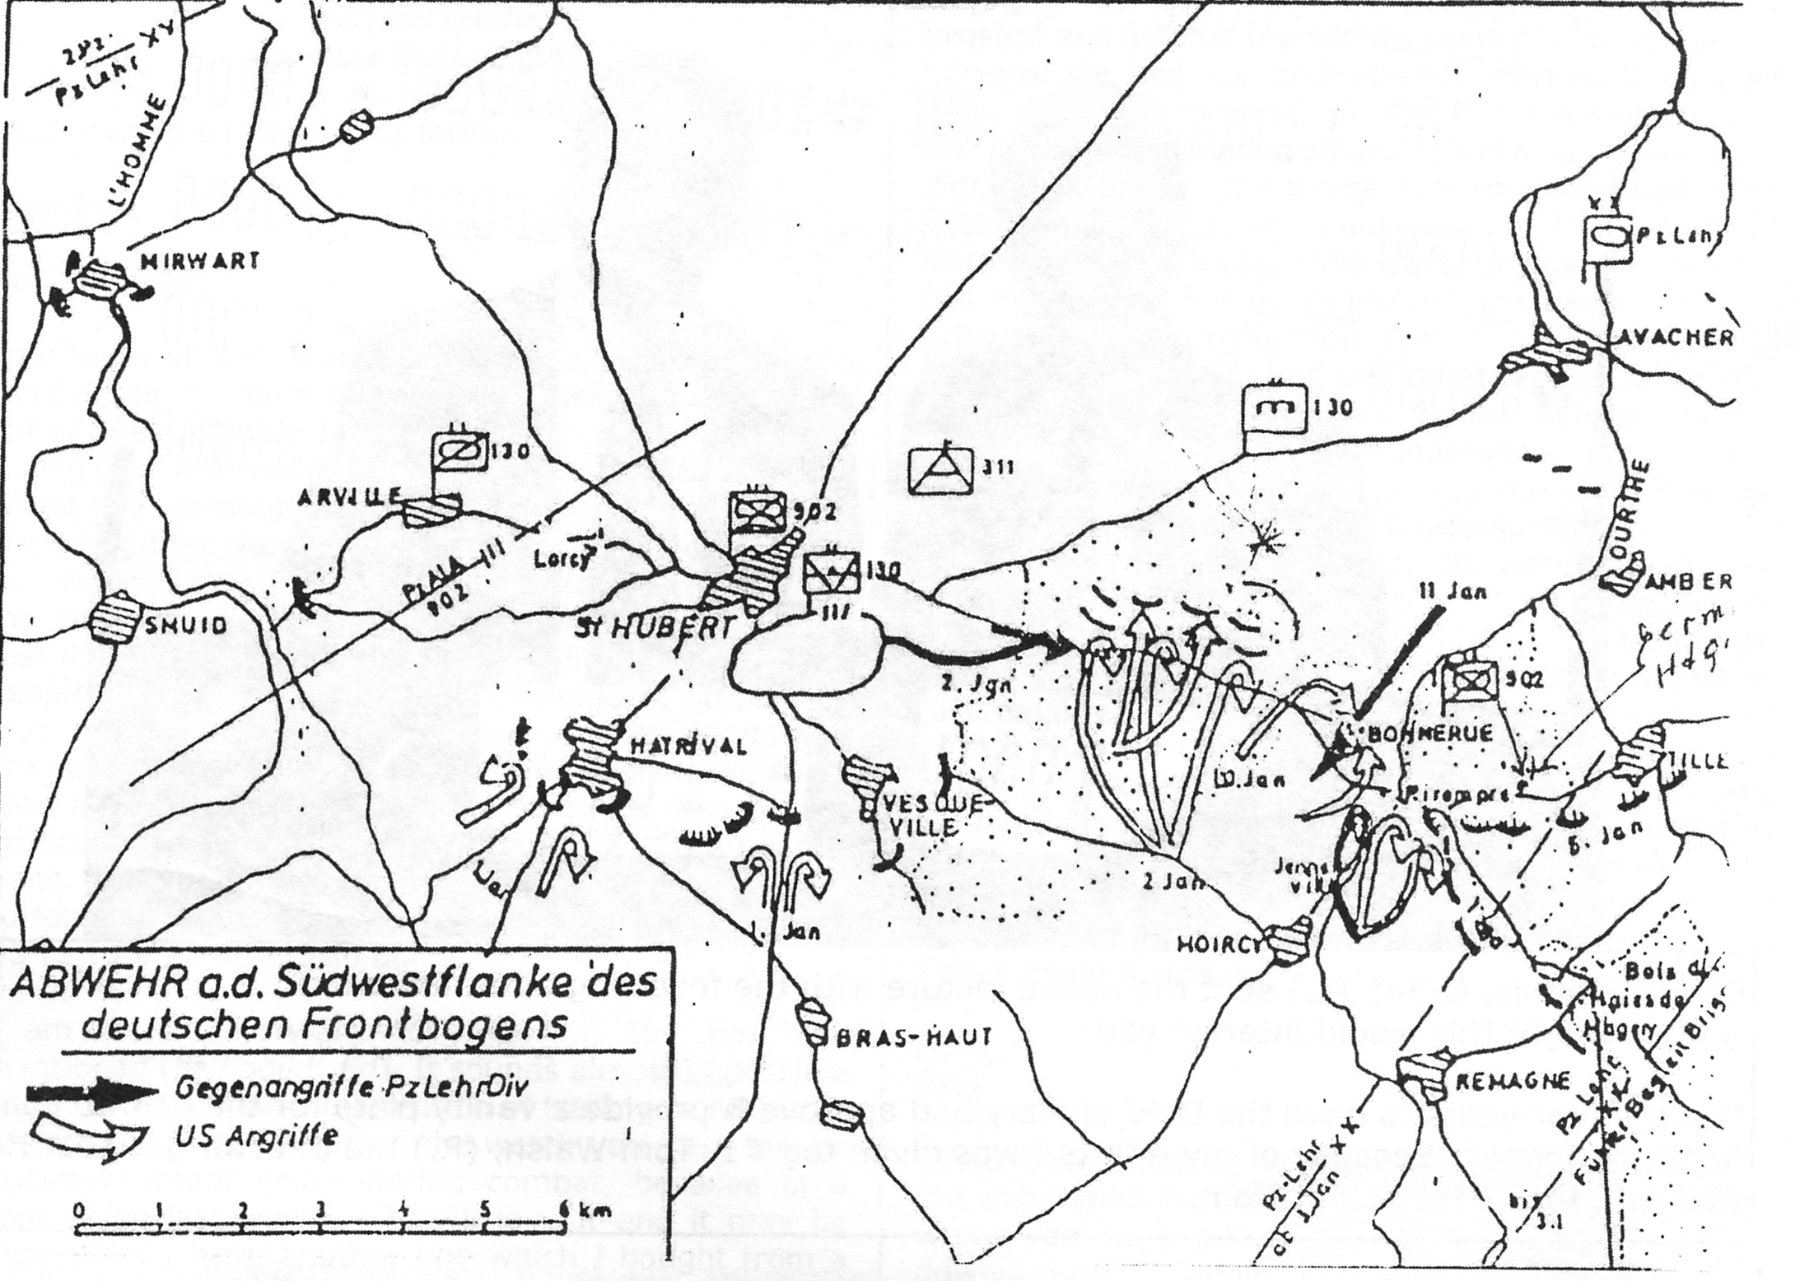 German map of the same area and timeframe